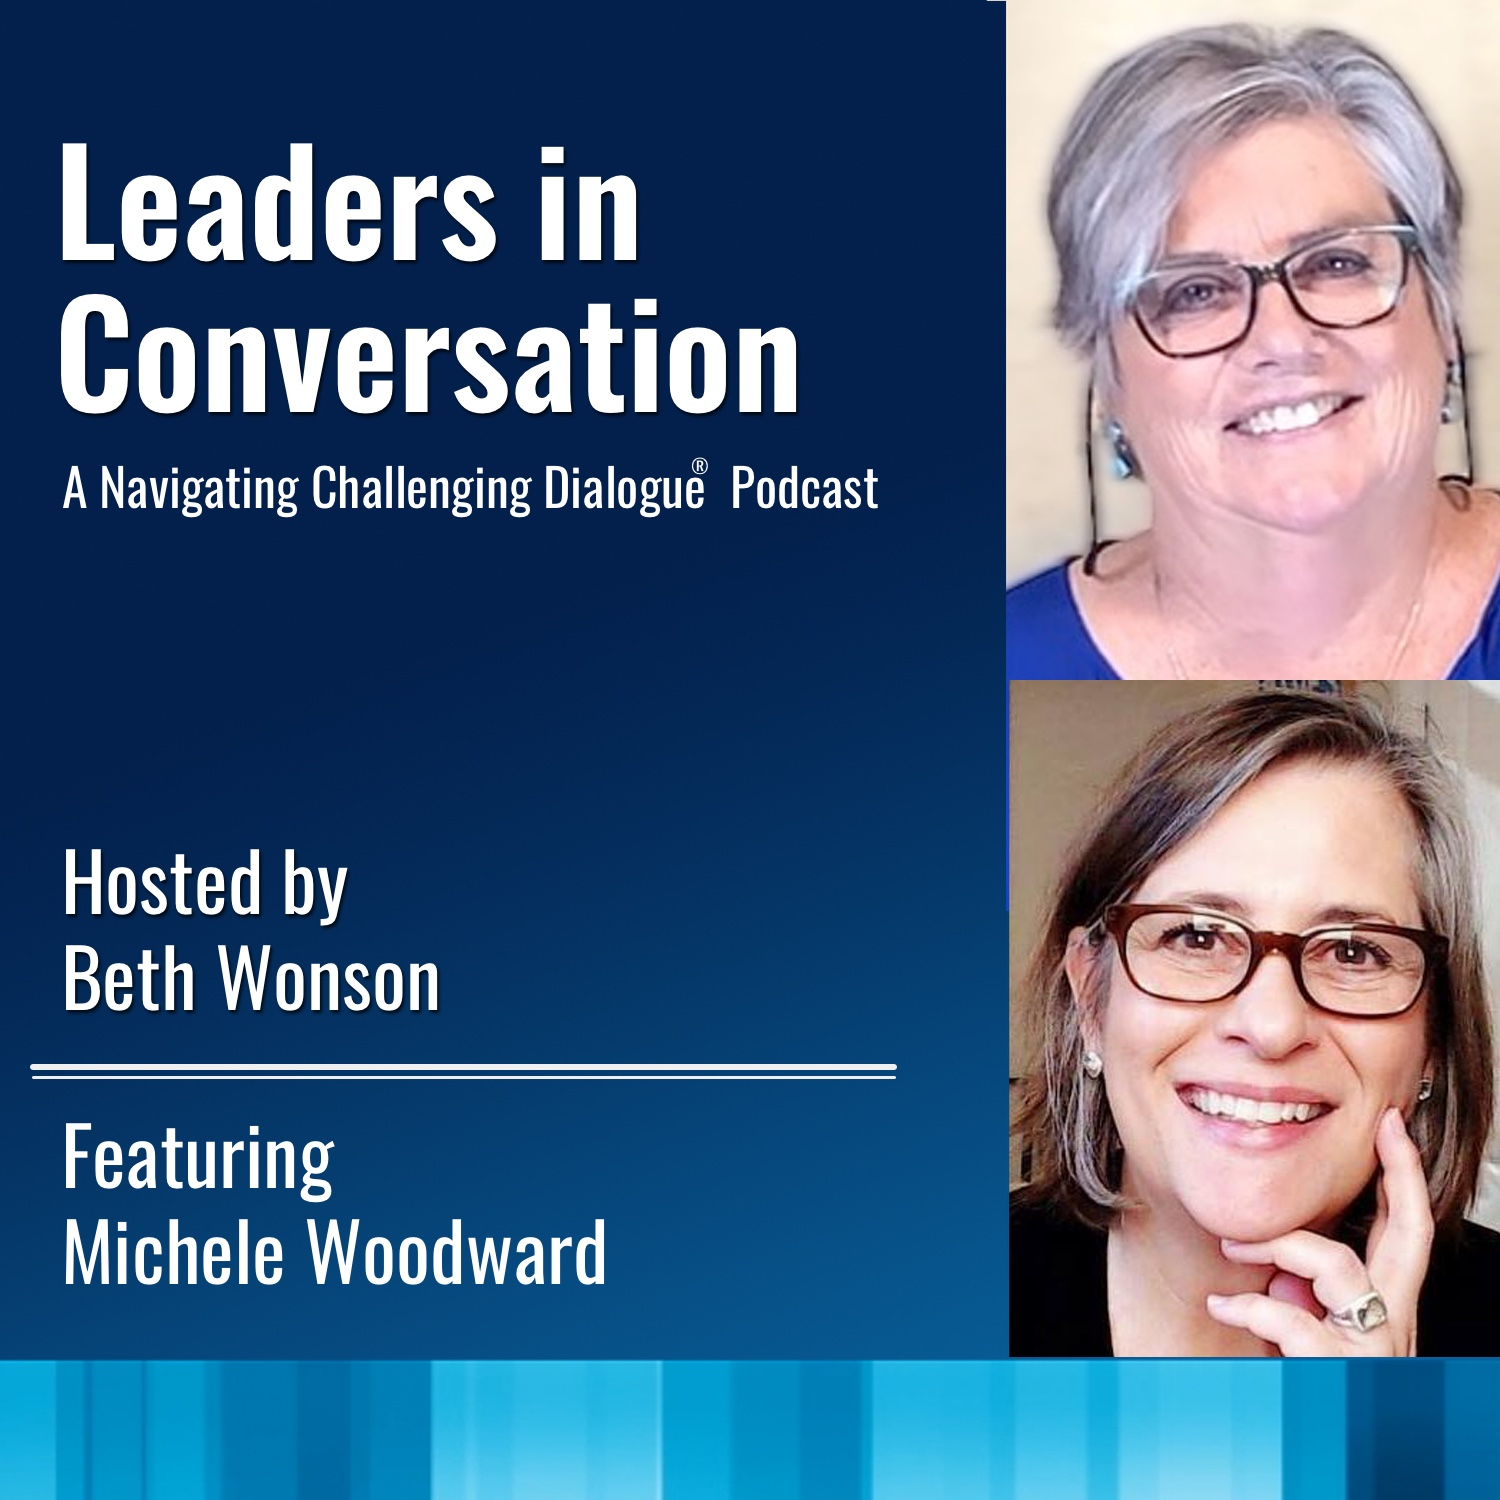 Leaders in Conversation - Beth Wonson Interviews -Michele-Woodward.jpg